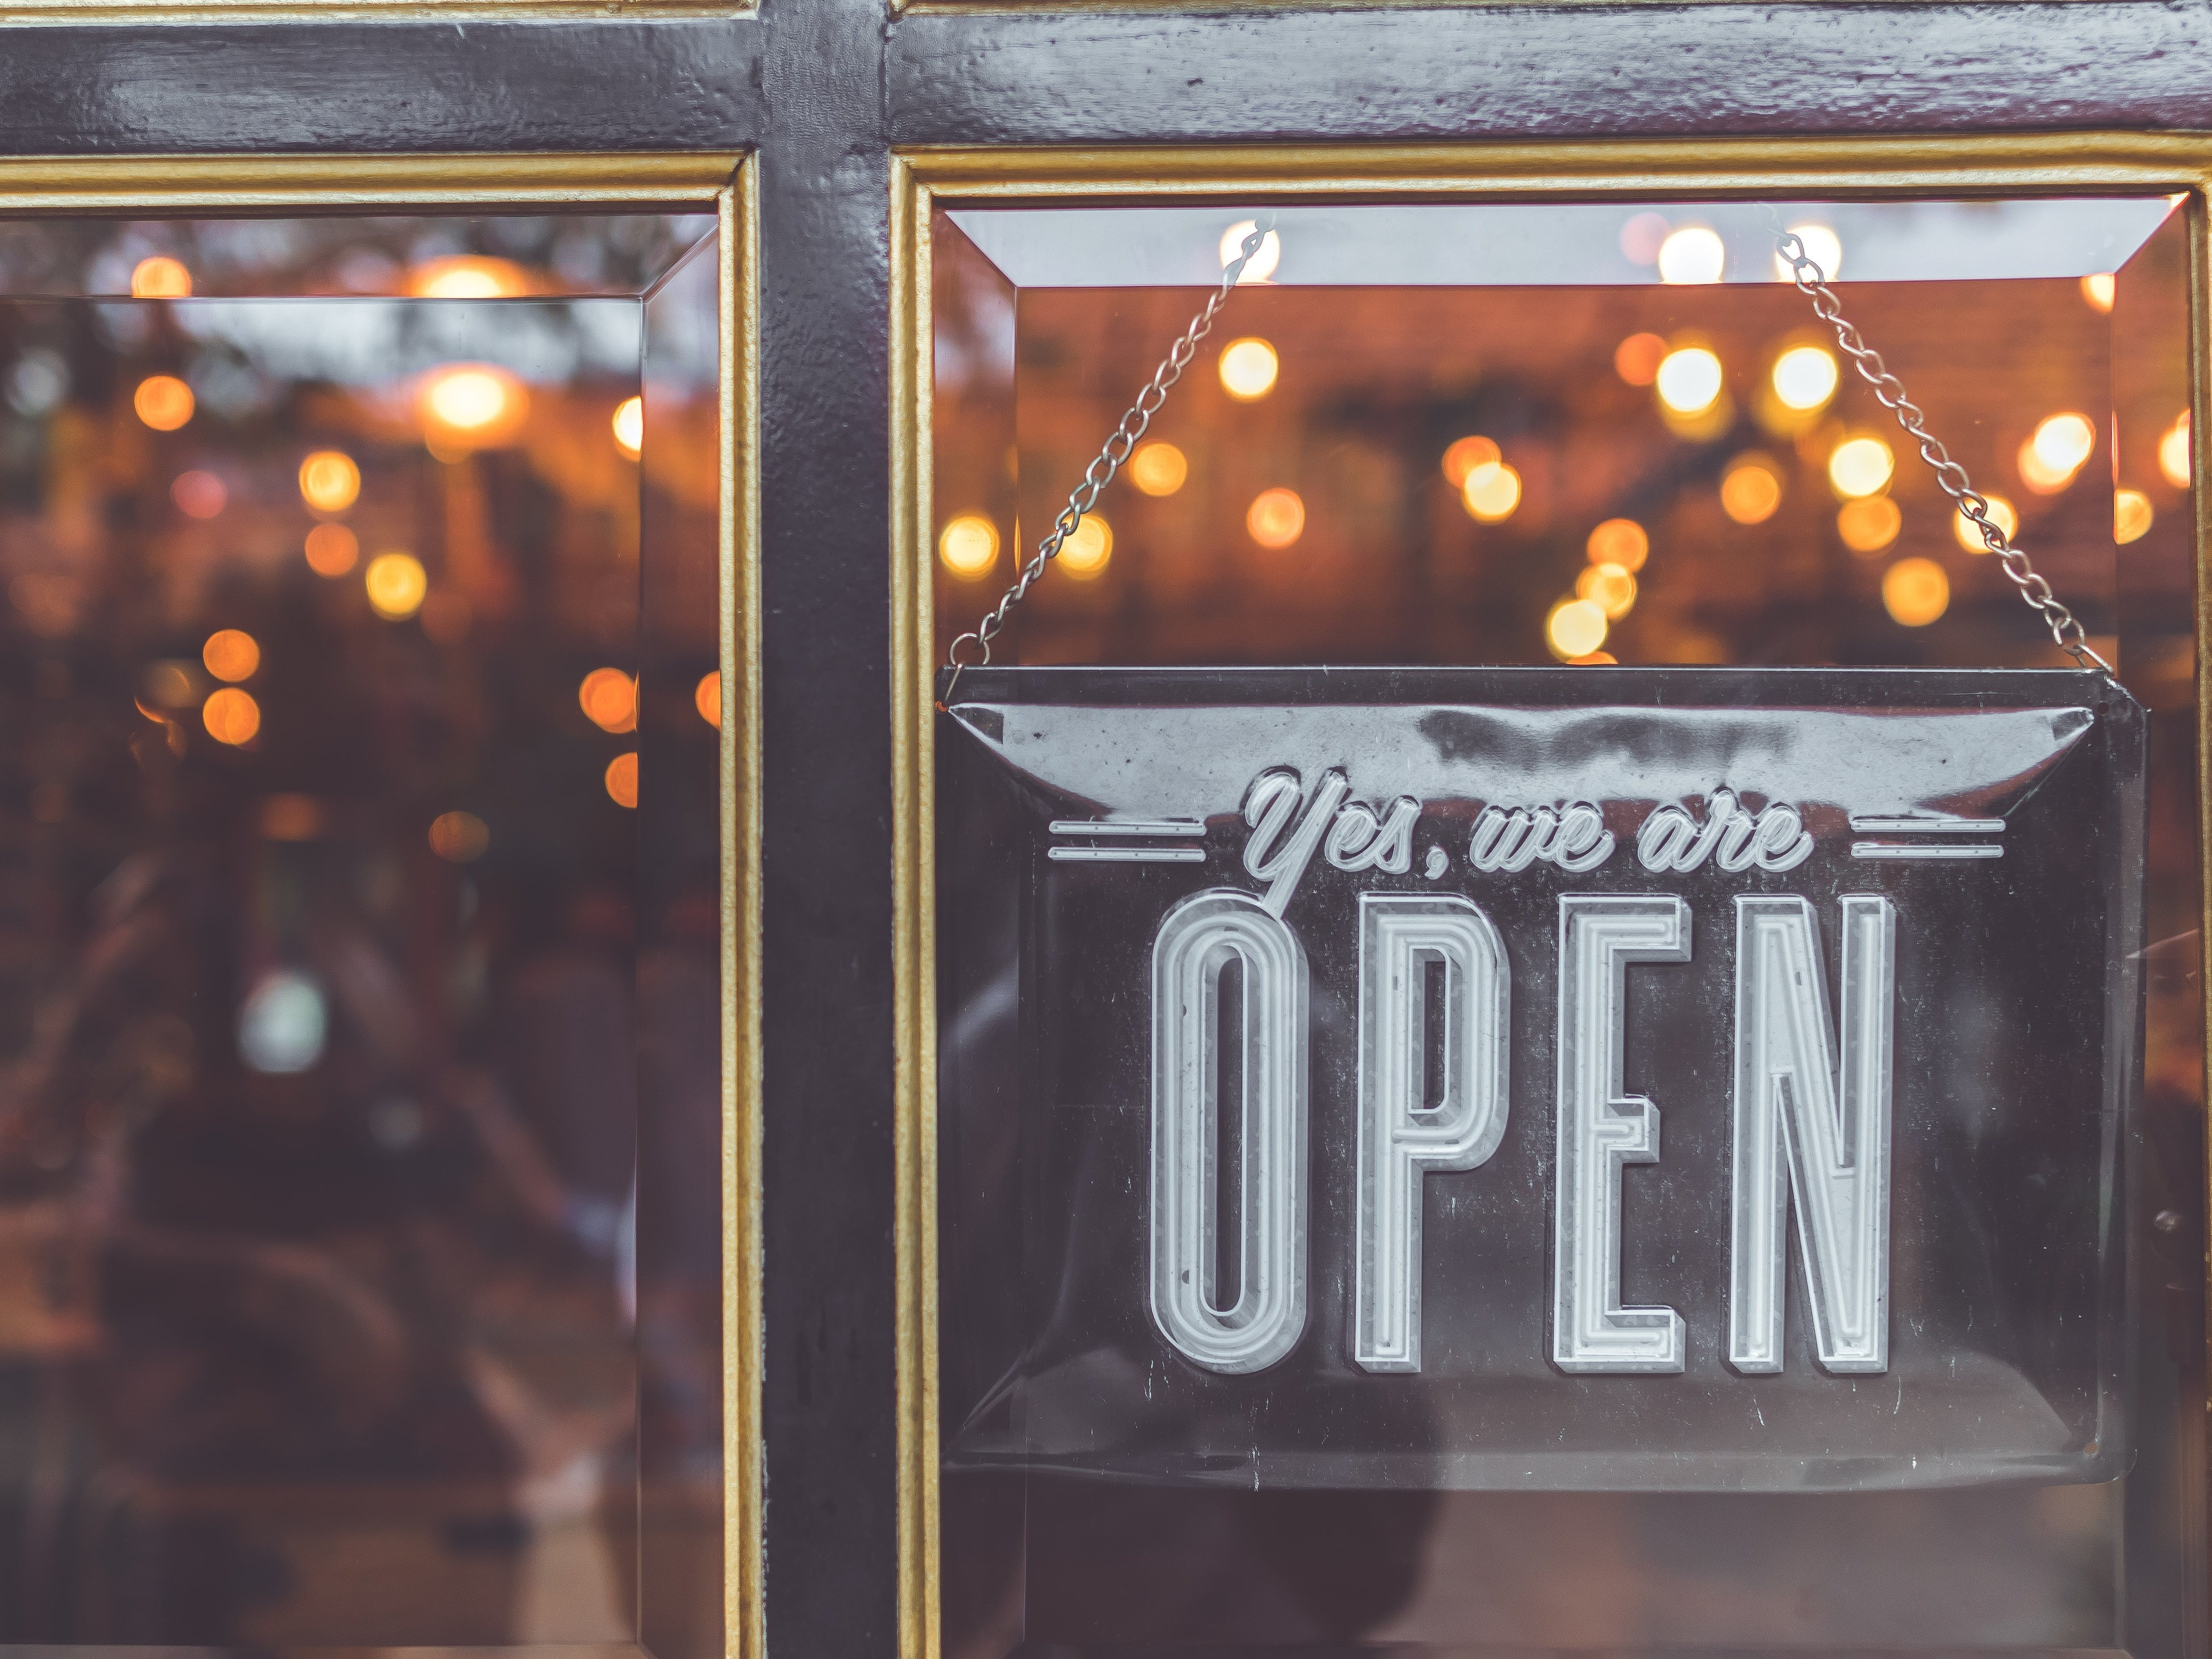 Venue privacy obligations following COVID-19 re-openings